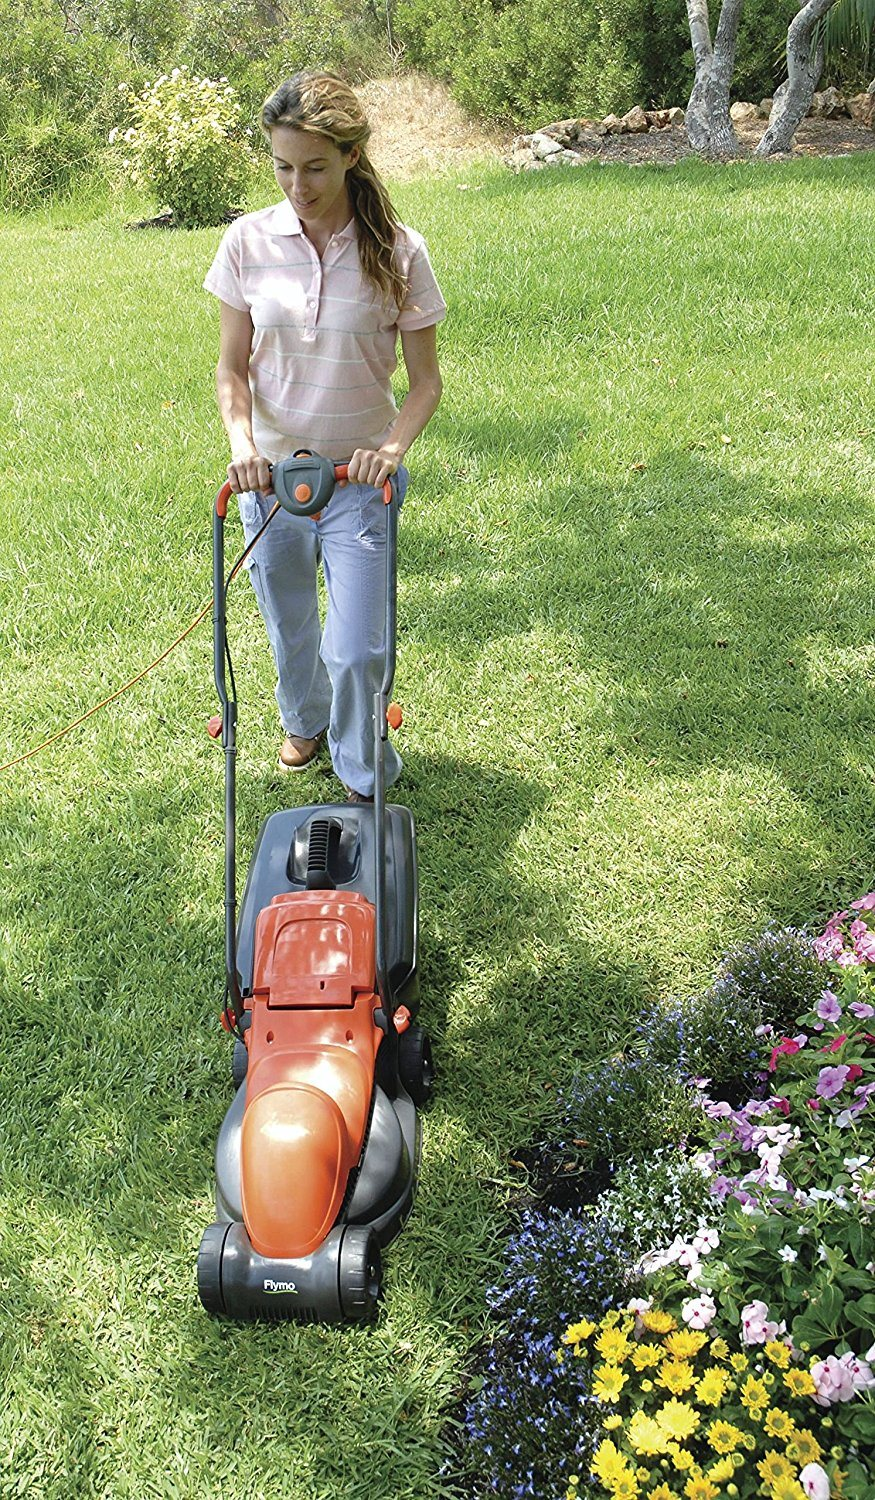 buying a lawnmower